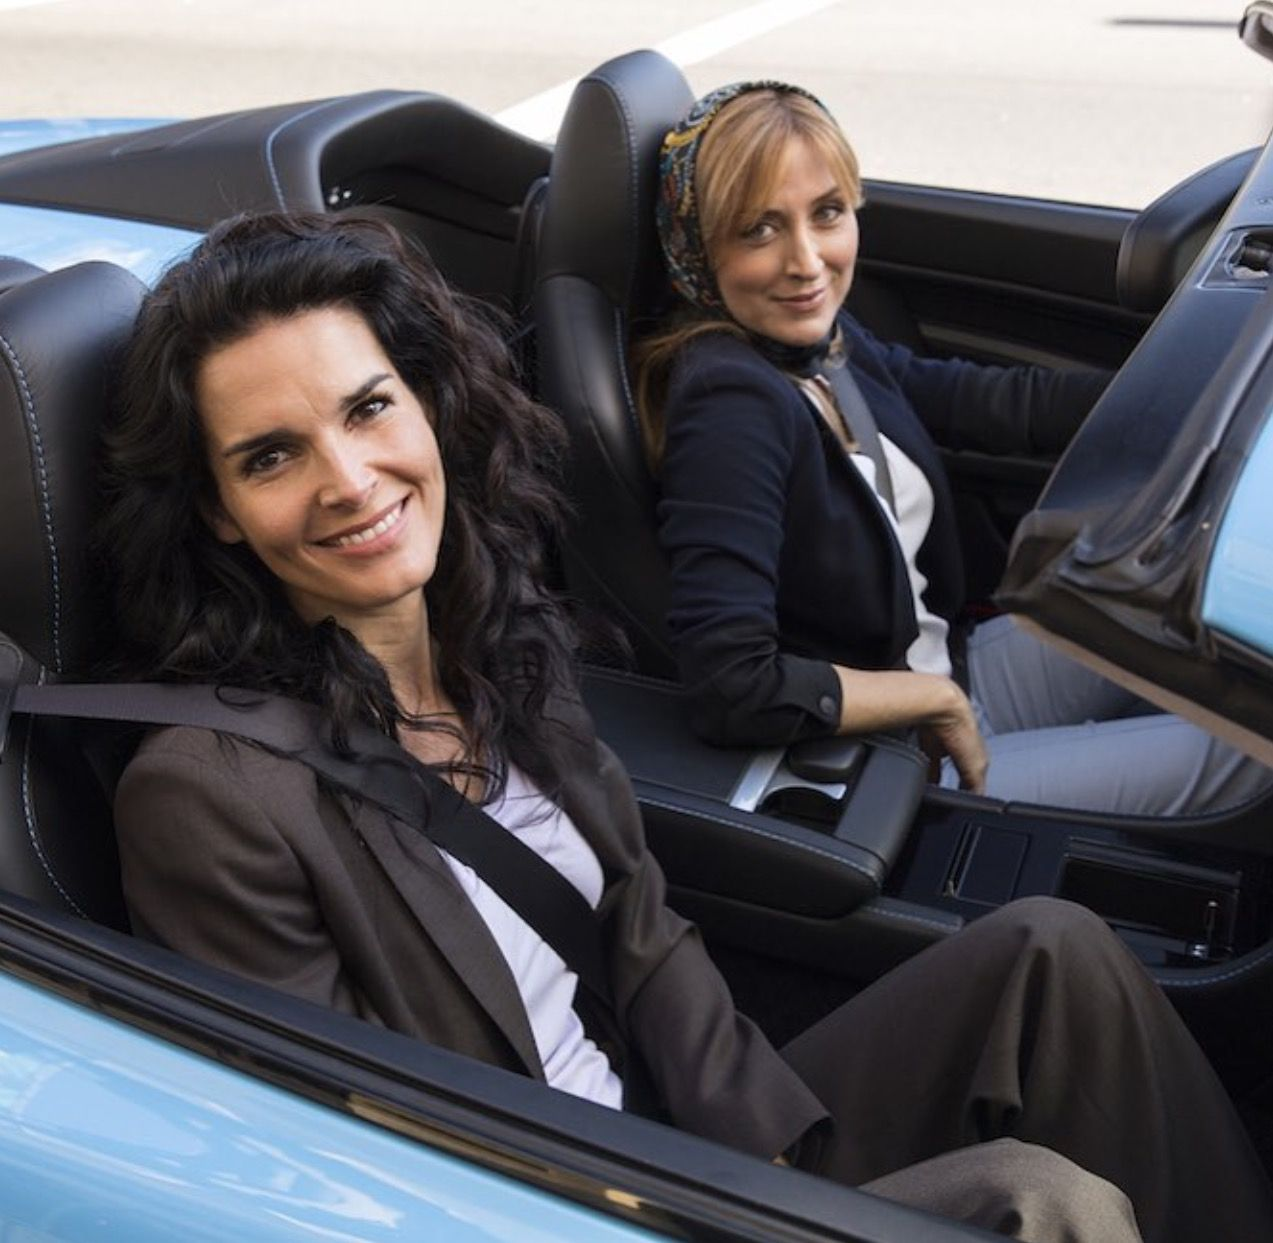 Pin by Jeffery Snyder on Rizzoli and Isles (Angie & Sasha ...